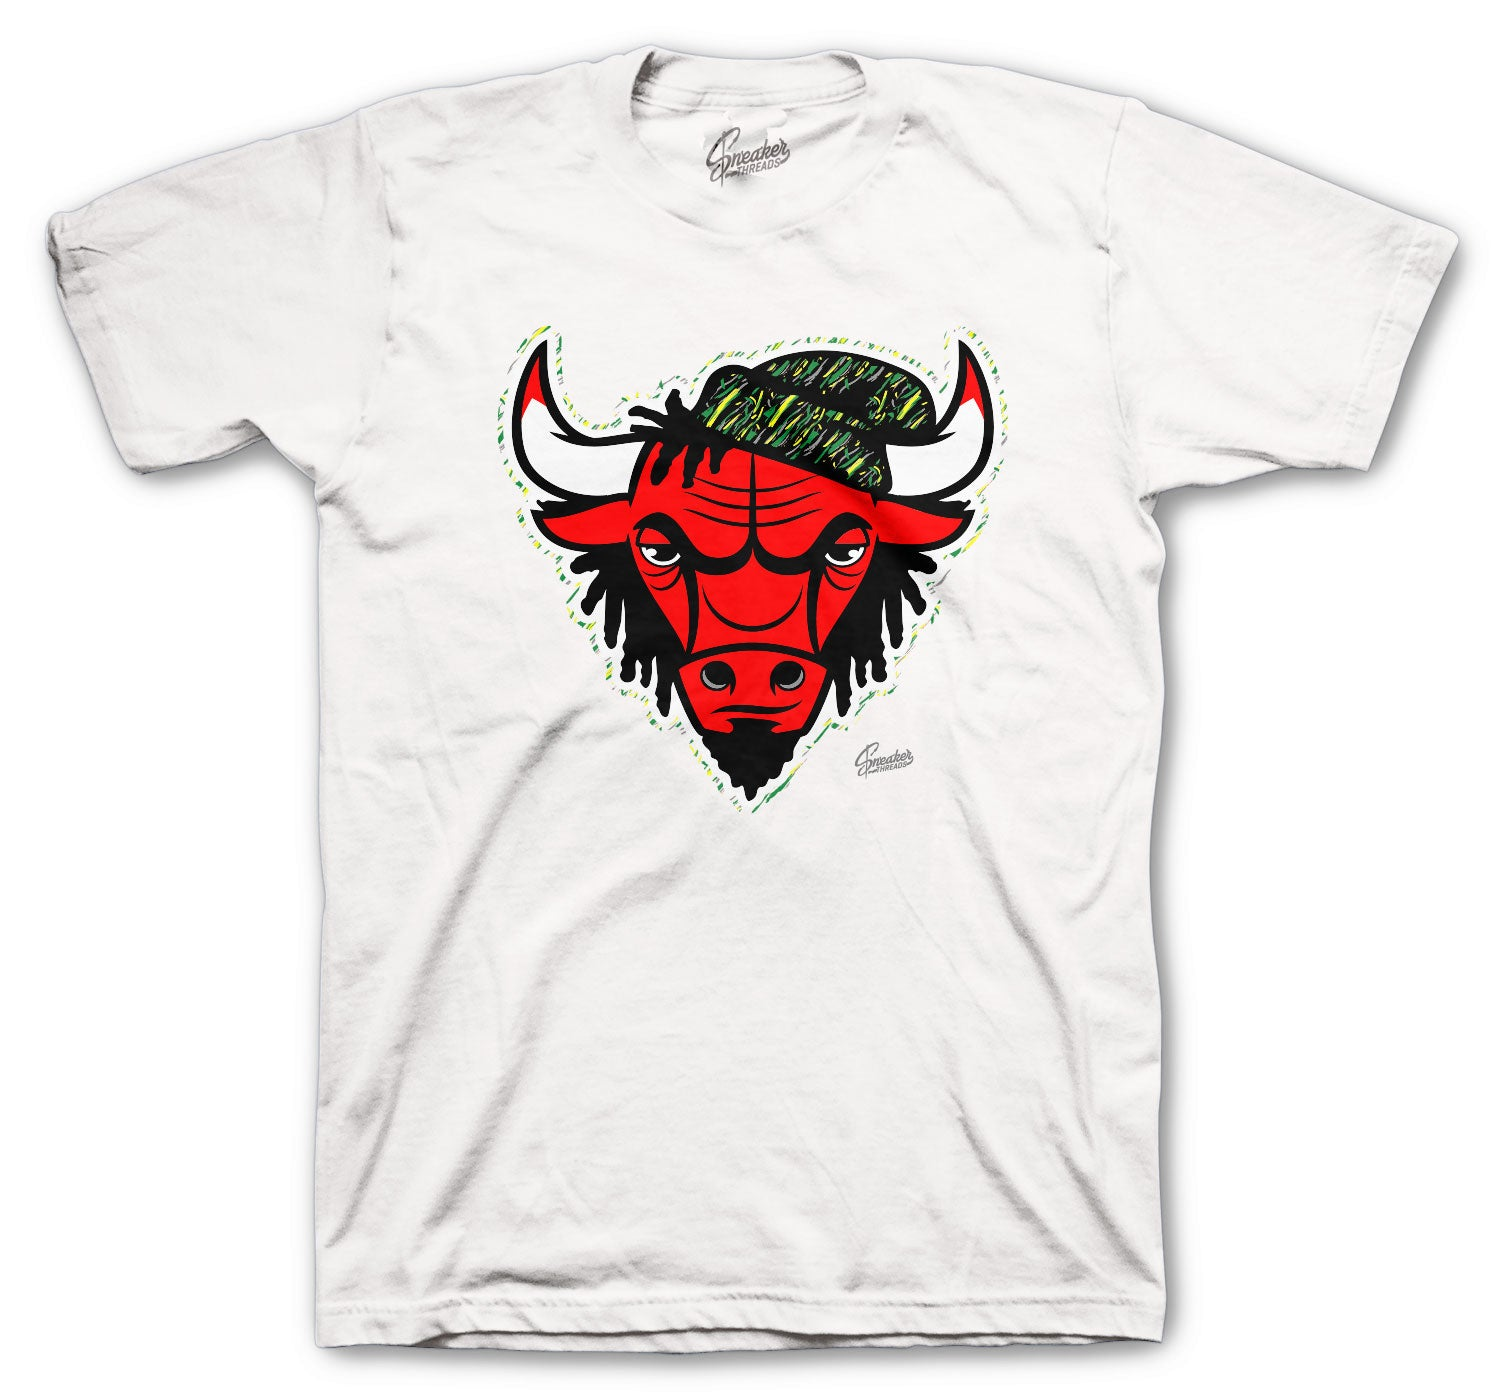 Mens shirt collection designed to match the Jordan 4 Rasta sneaker collection